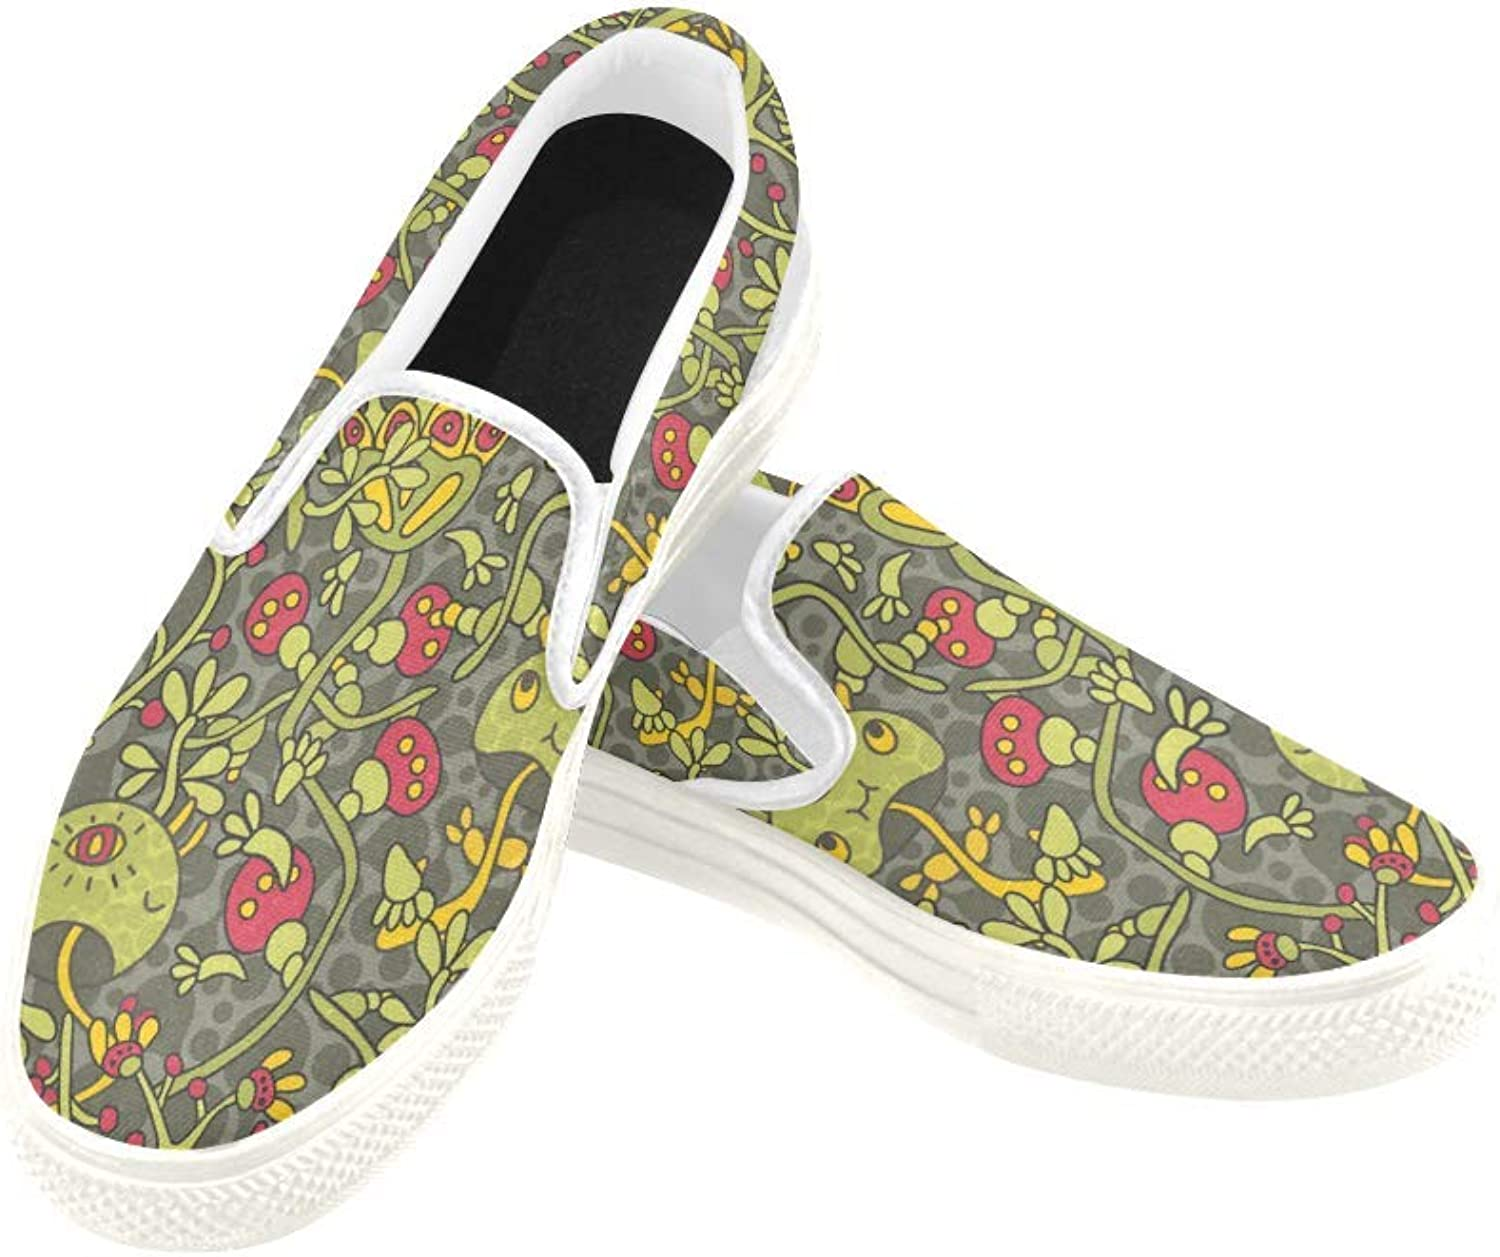 InterestPrint Womens Slip On Canvas shoes Loafers Mushroom Girls Classic Casual Sneakers Flats